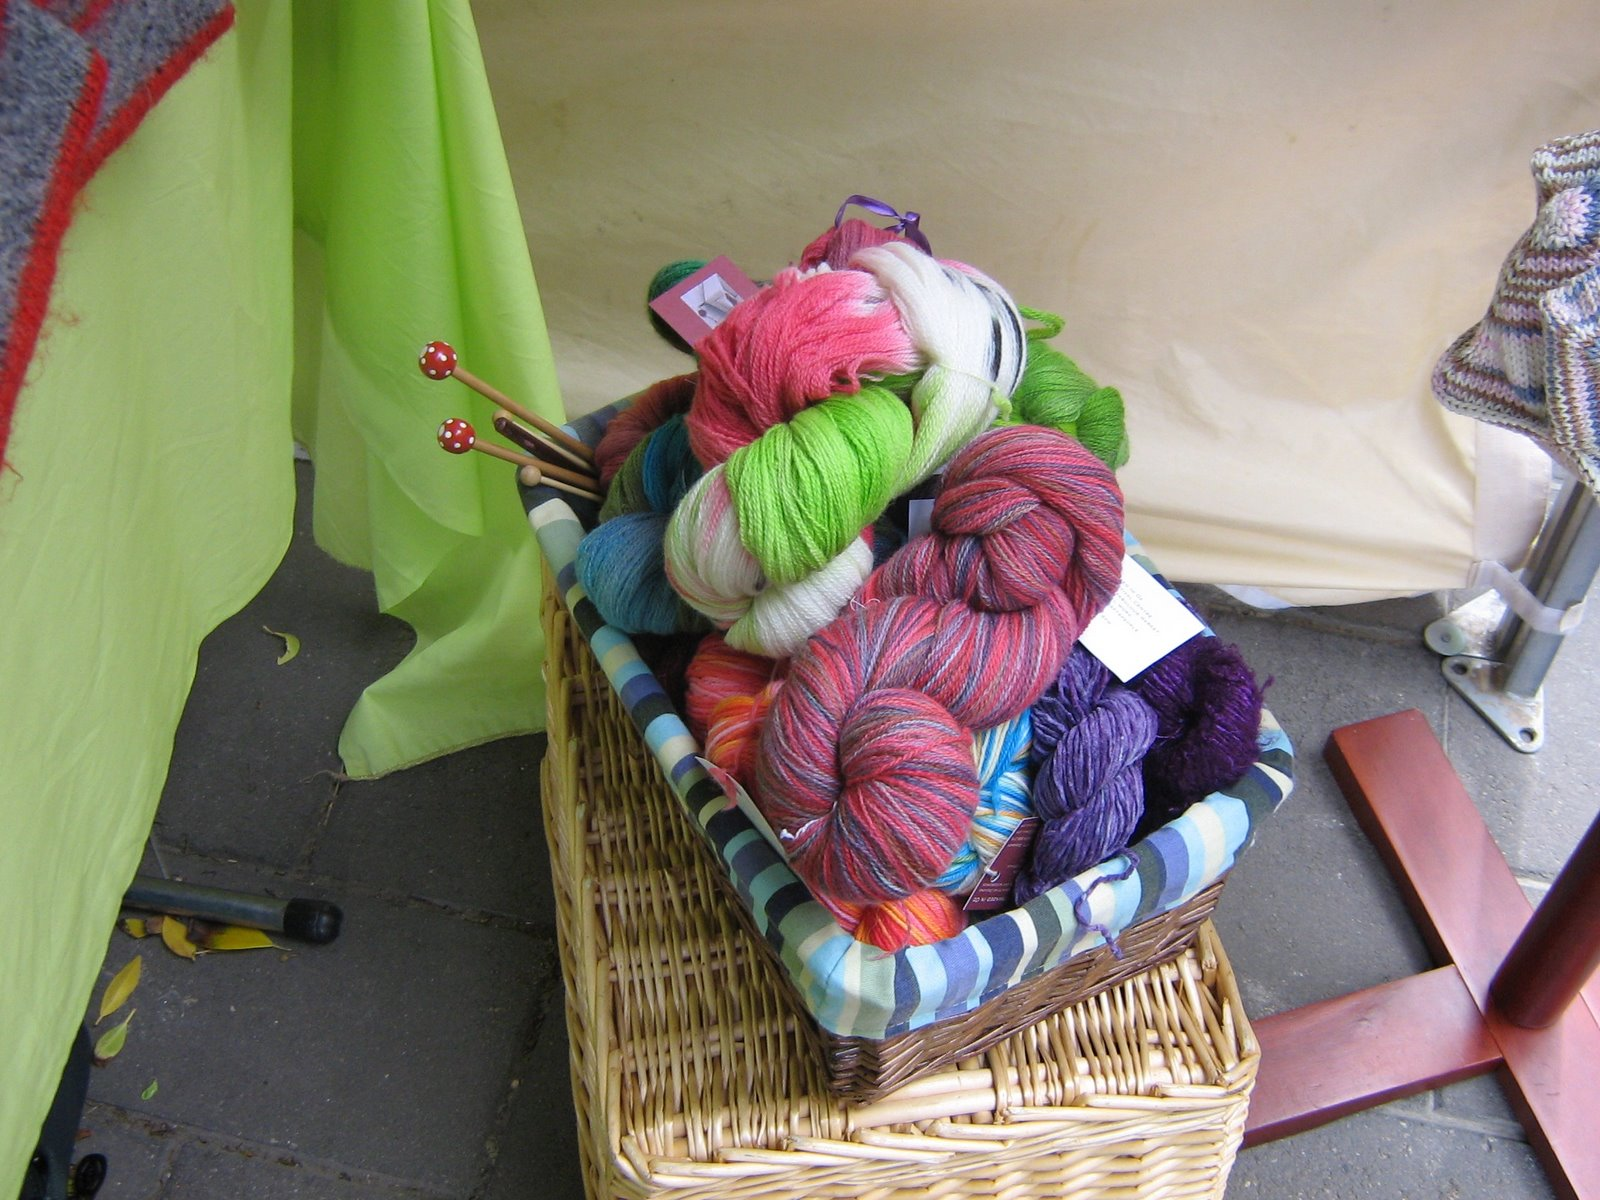 [art+hart+yarn+basket]